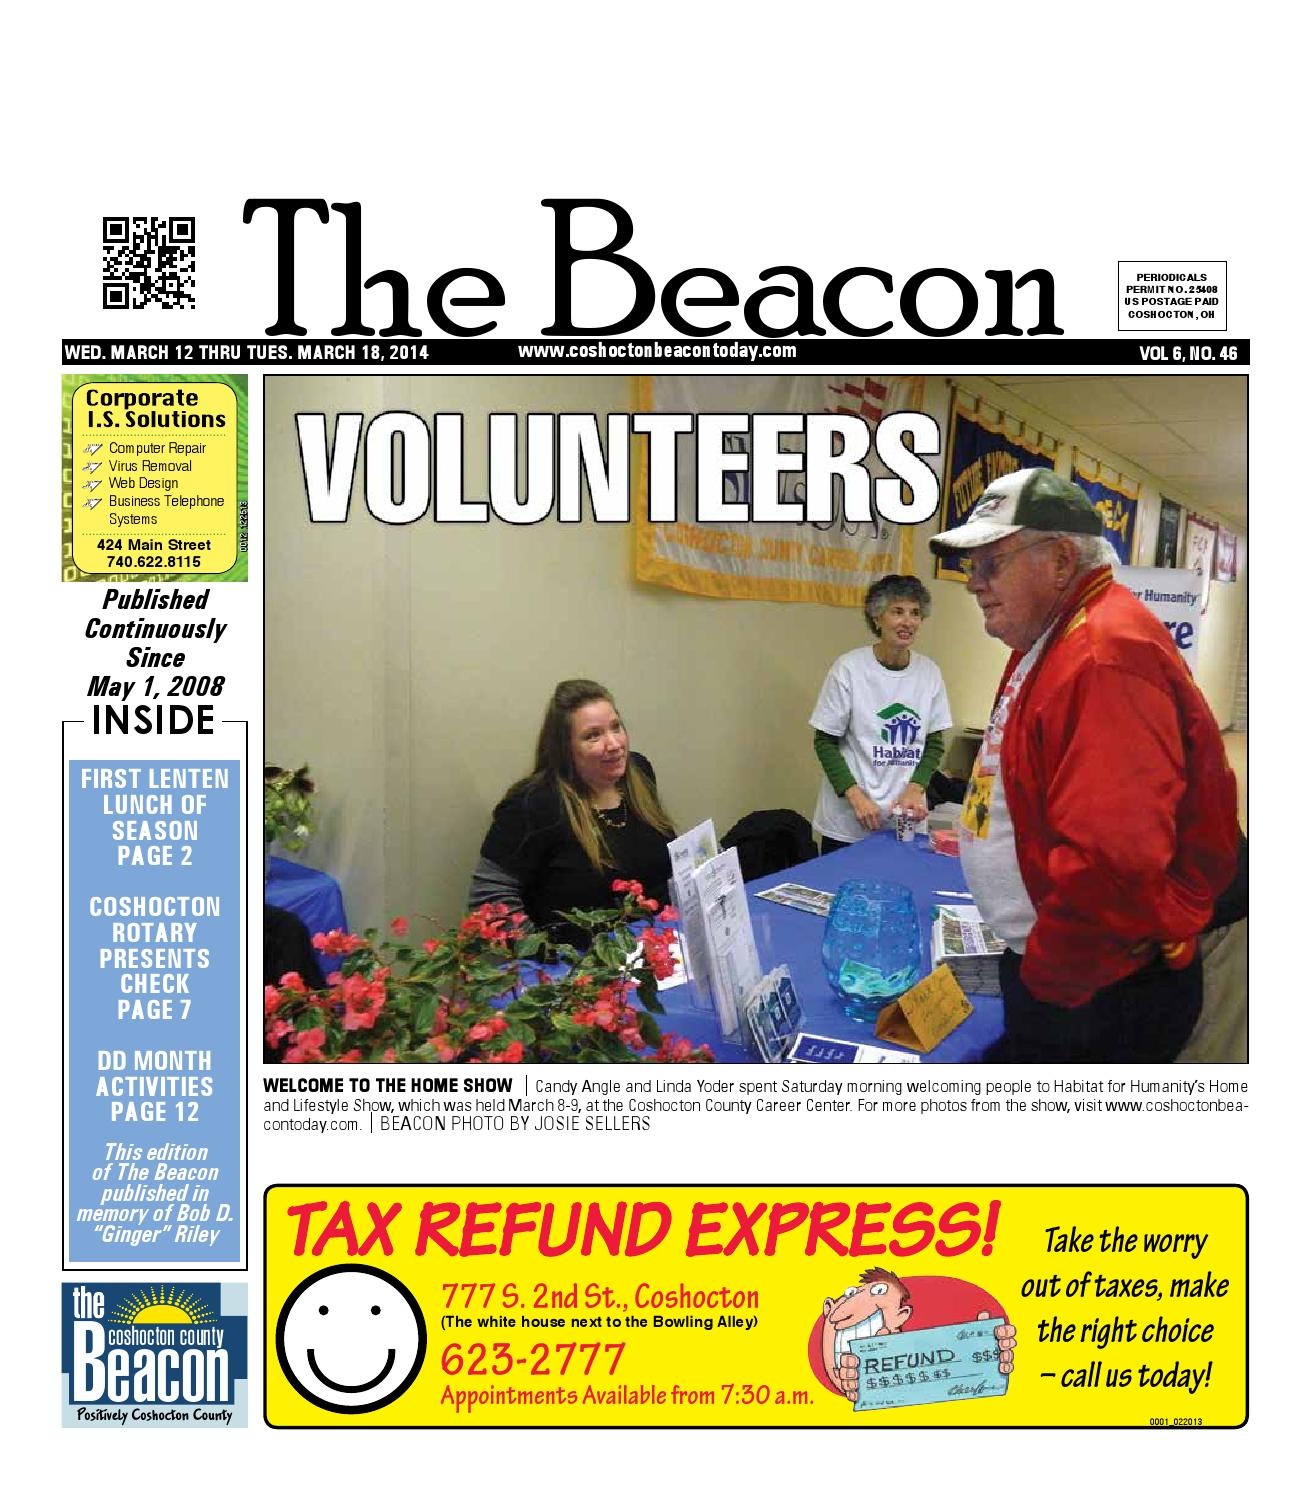 March 12 2014 Coshocton County Beacon By The